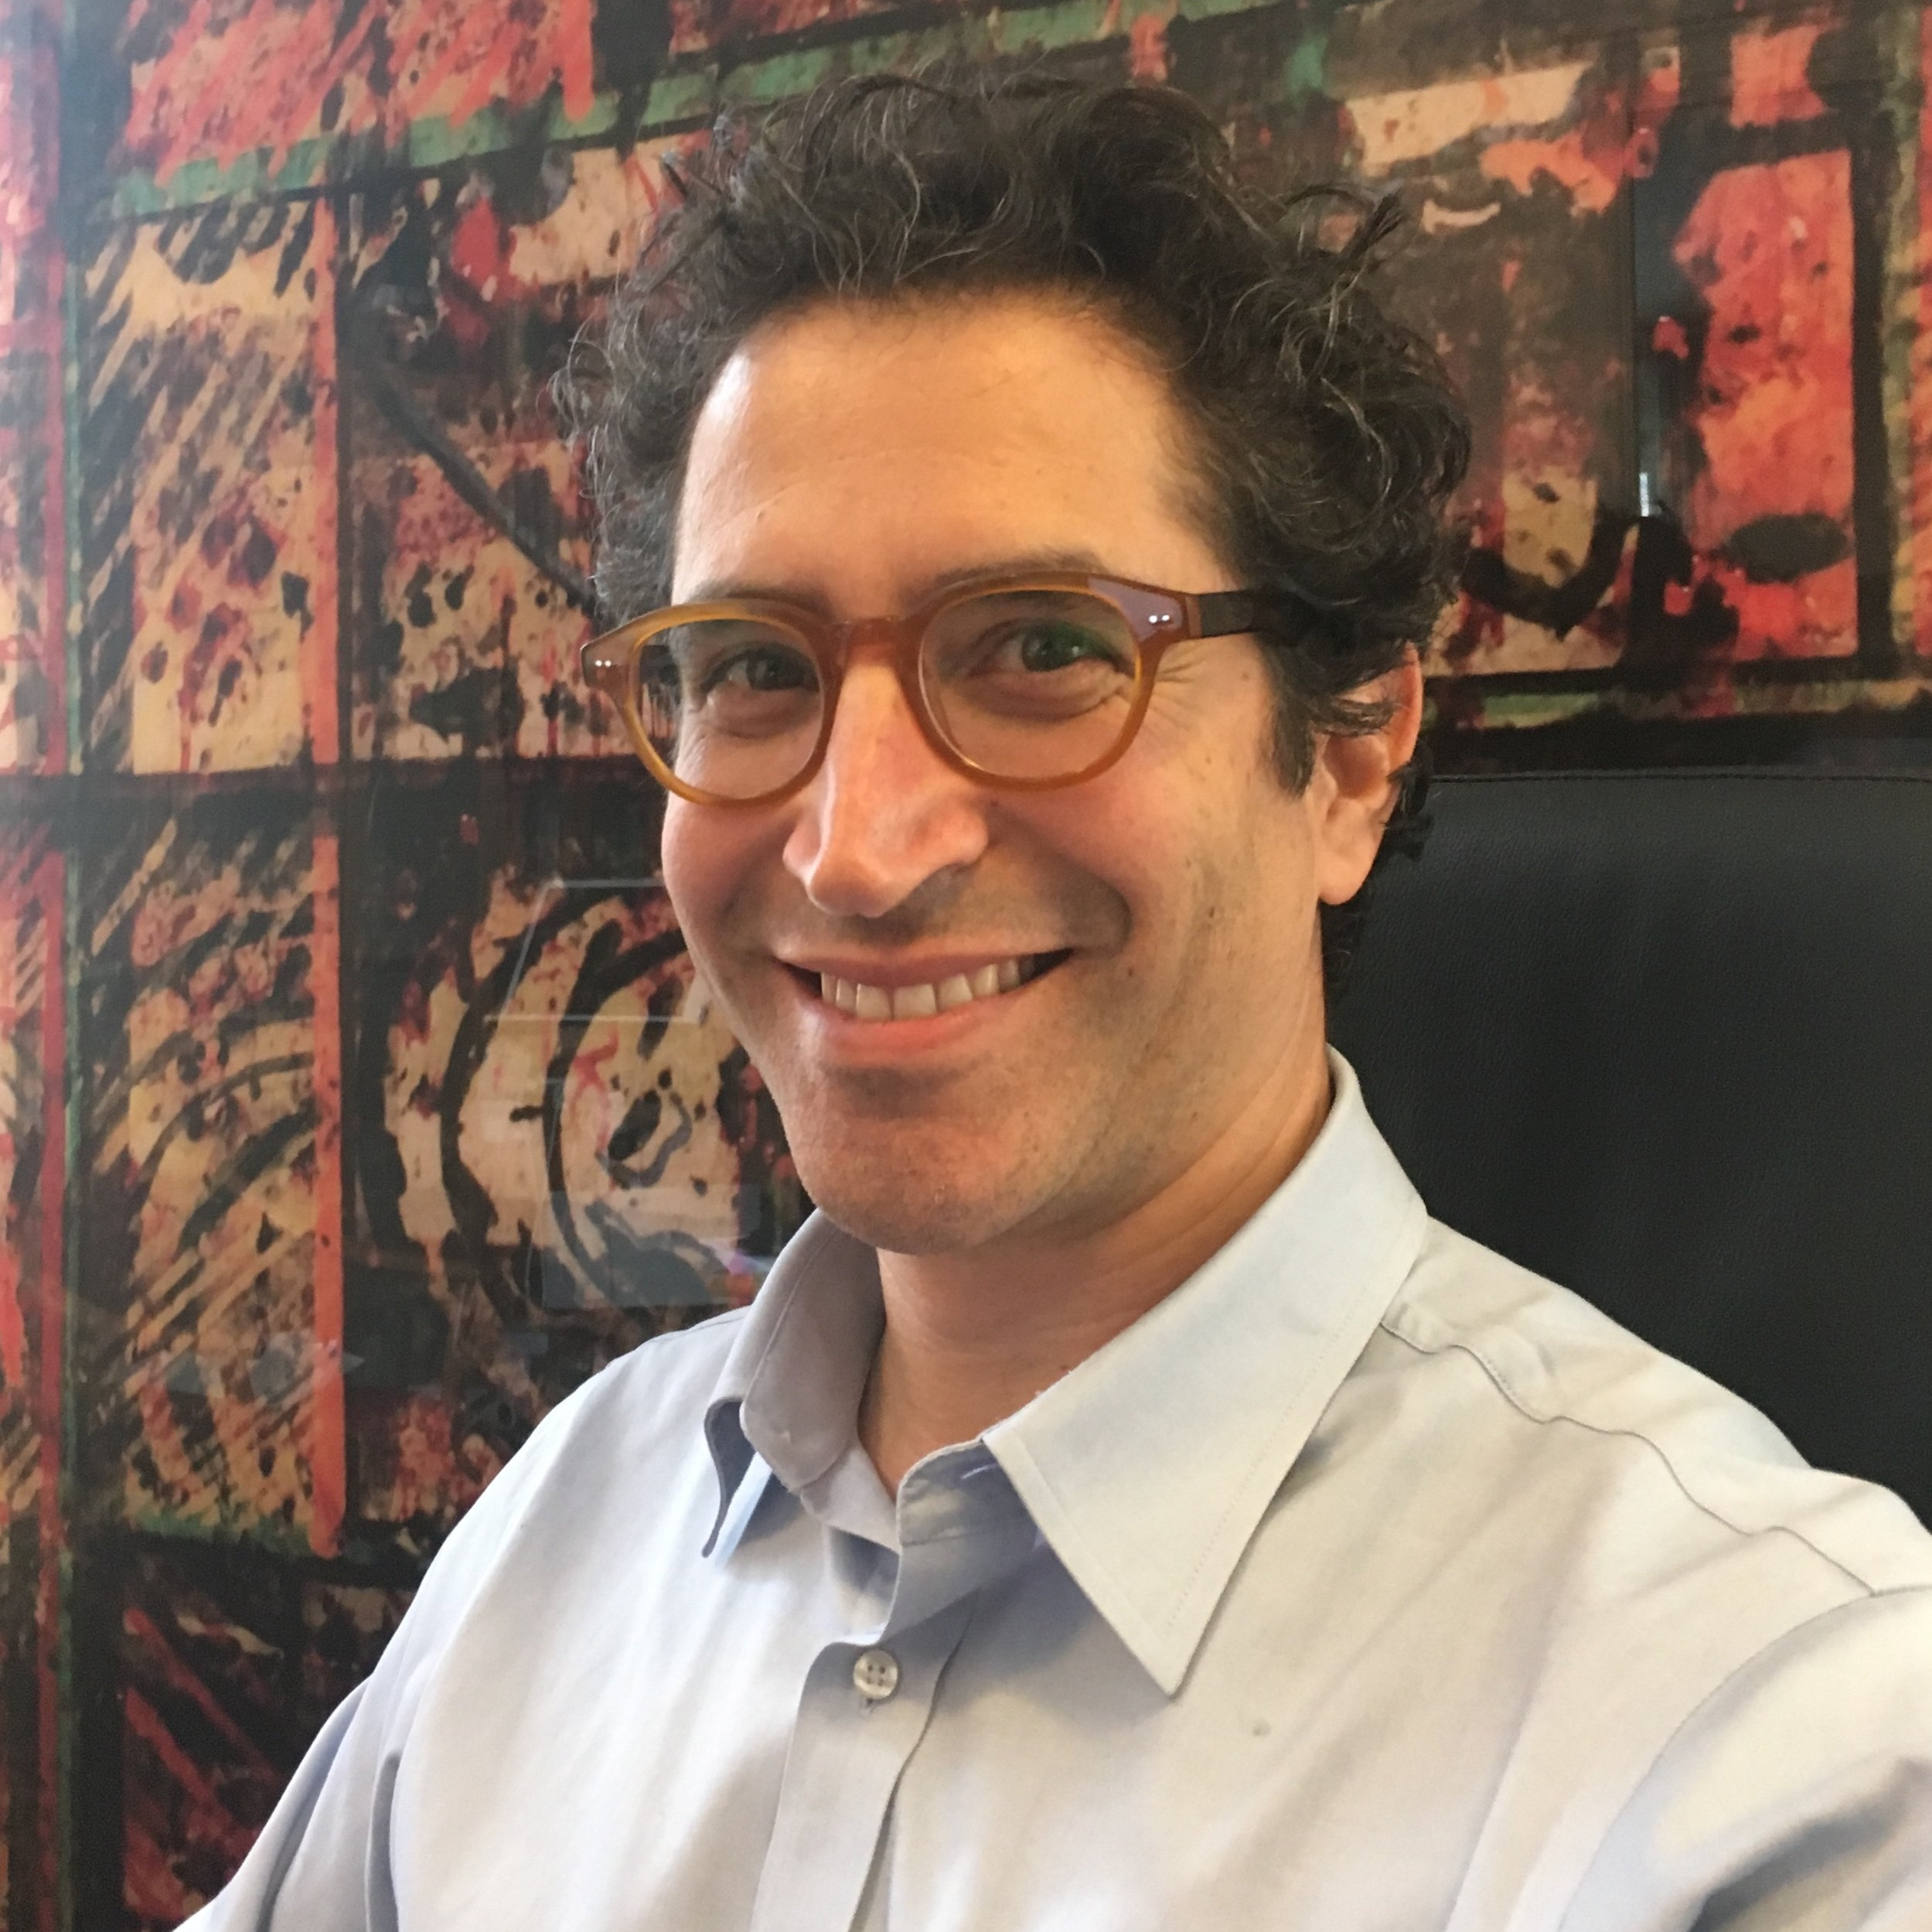 Jacky has been with the European Board and College of Obstetrics and Gynaecology for the past 15 years, first as a European trainee representative, then as a national representative for France, and then as an Officer. He is Professor of Obstetrics in Paris, specialising in maternal medicine.